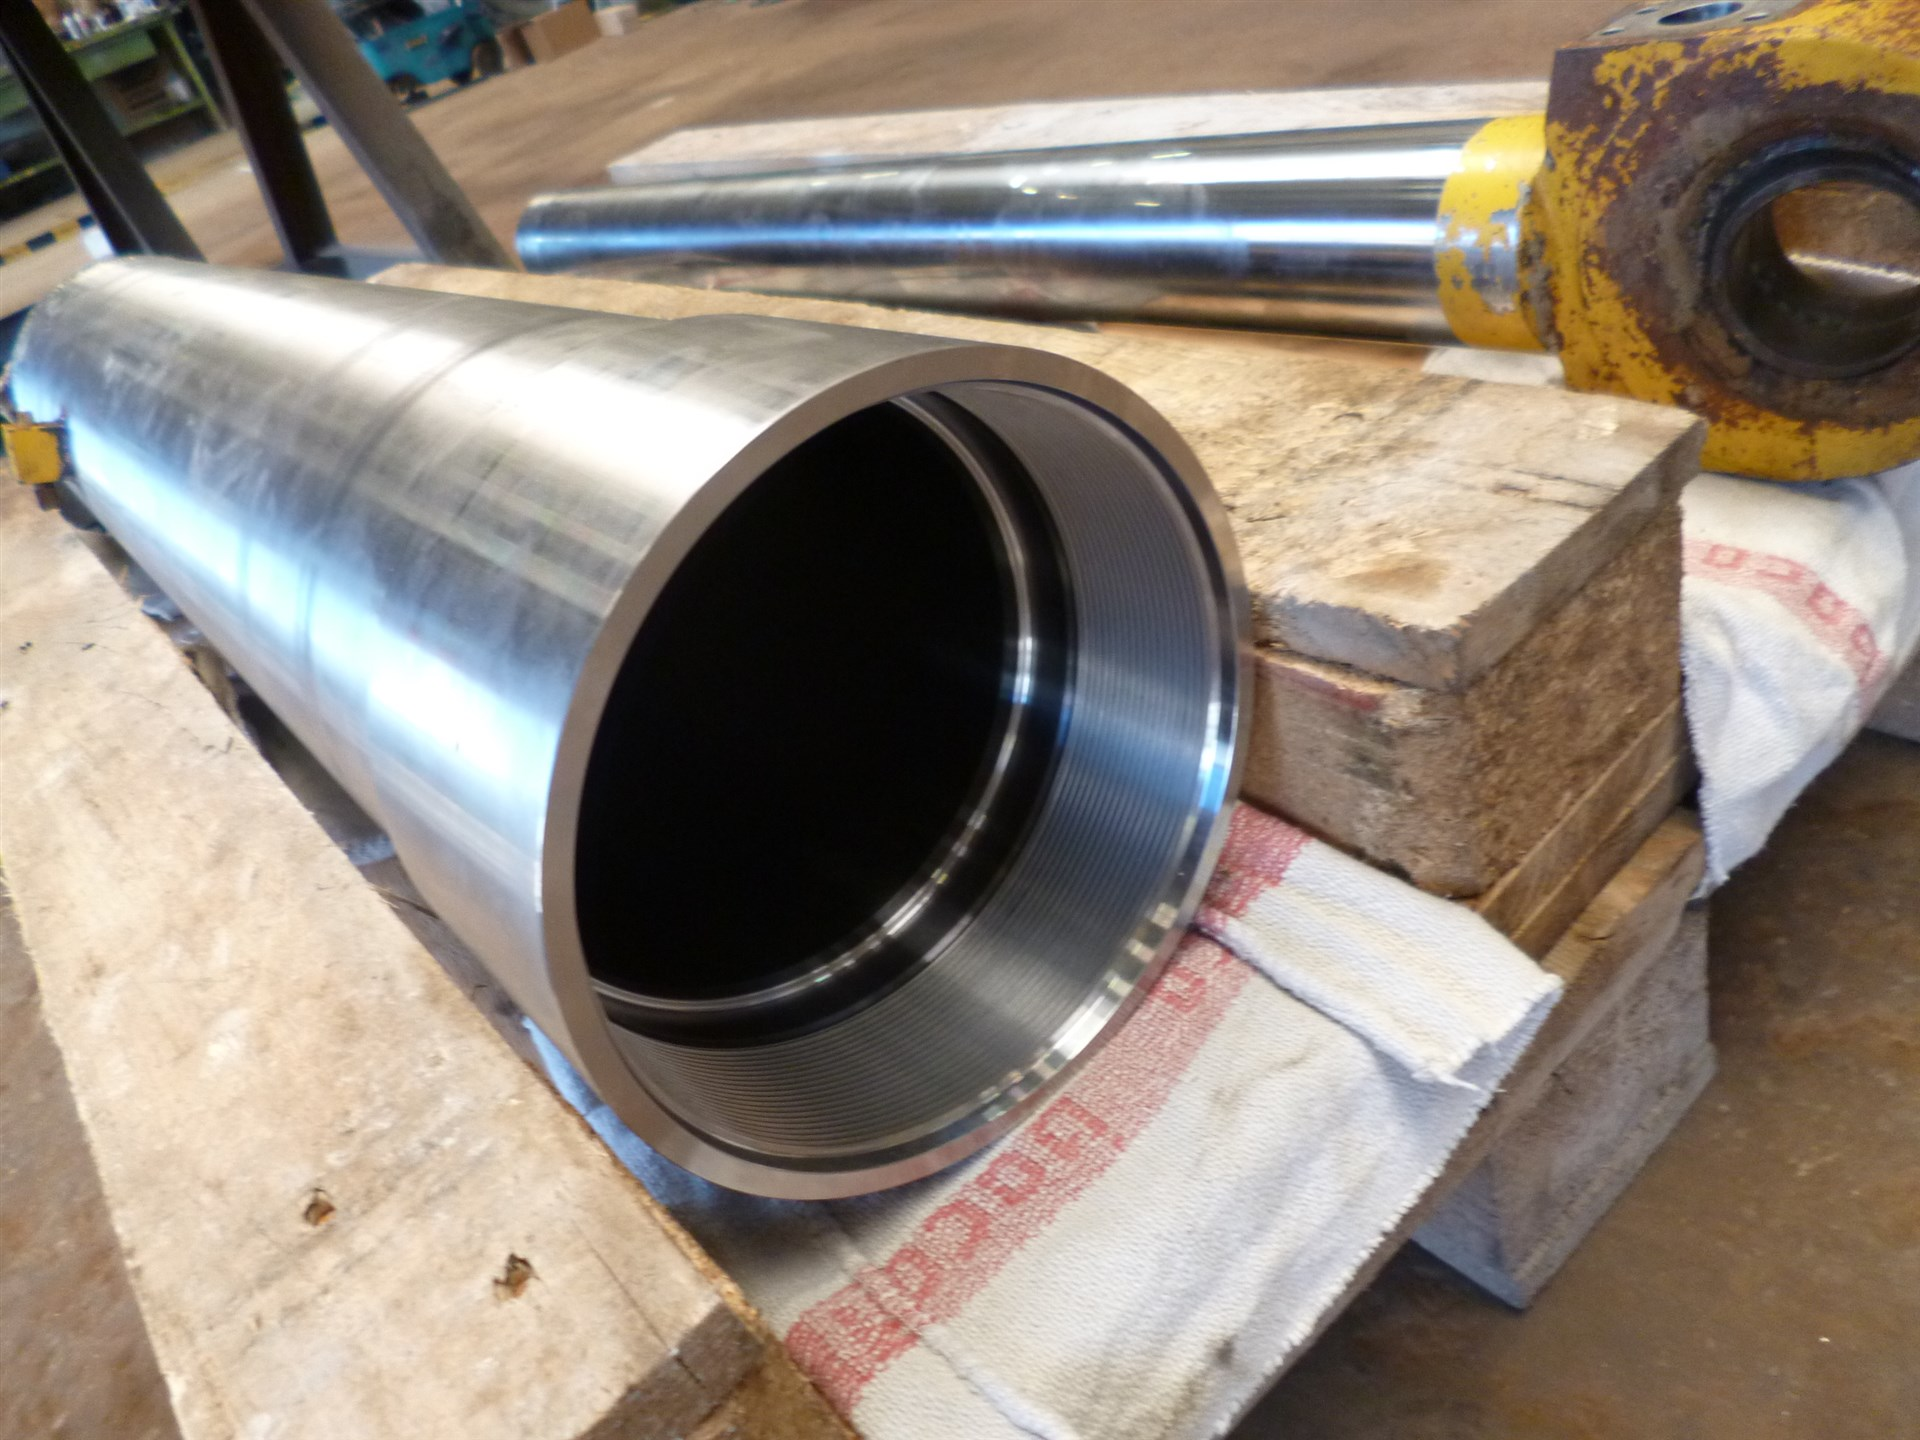 Repair of the hydraulic cylinder